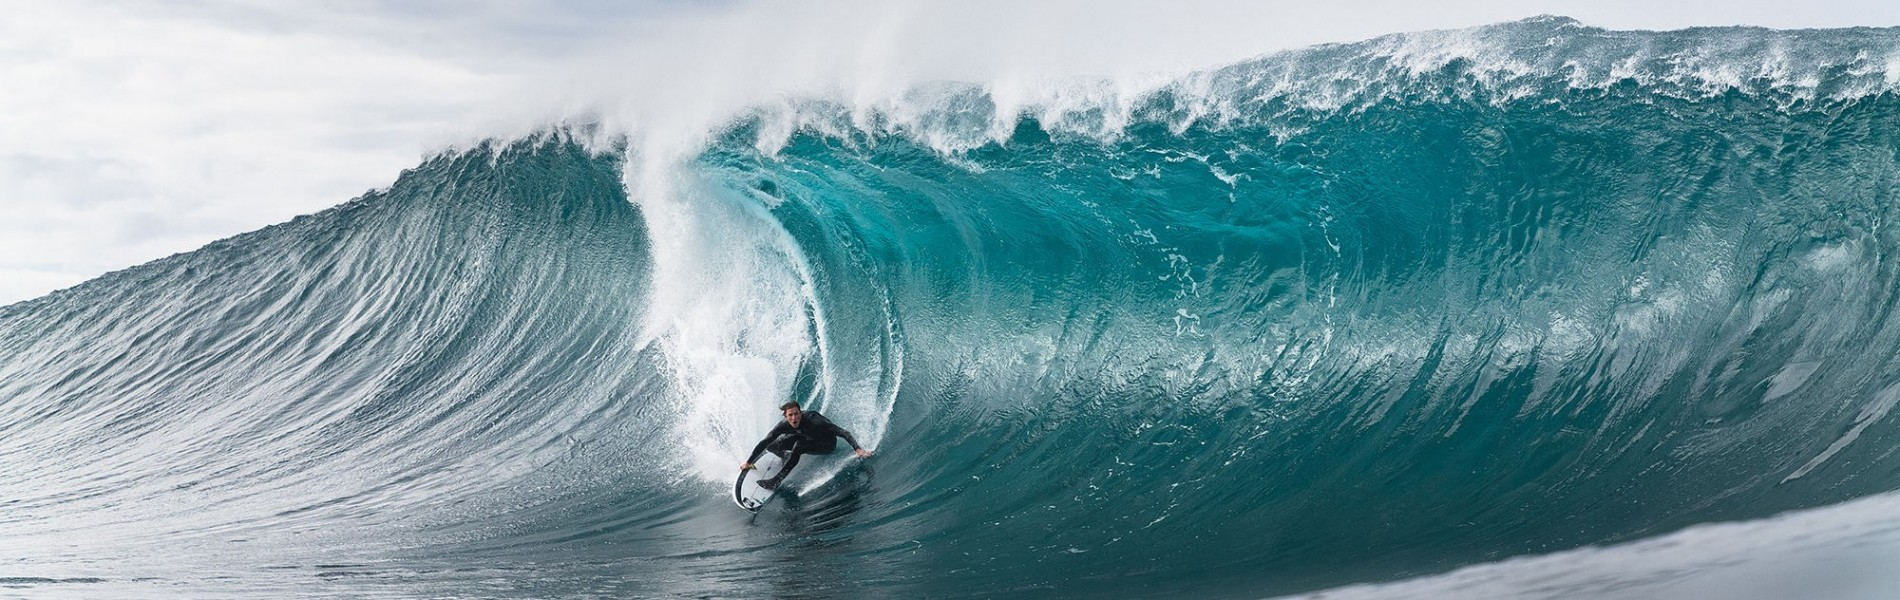 RISKY RIPPLES: THE ULTIMATE SLAB QUEST WITH MATT BROMLEY